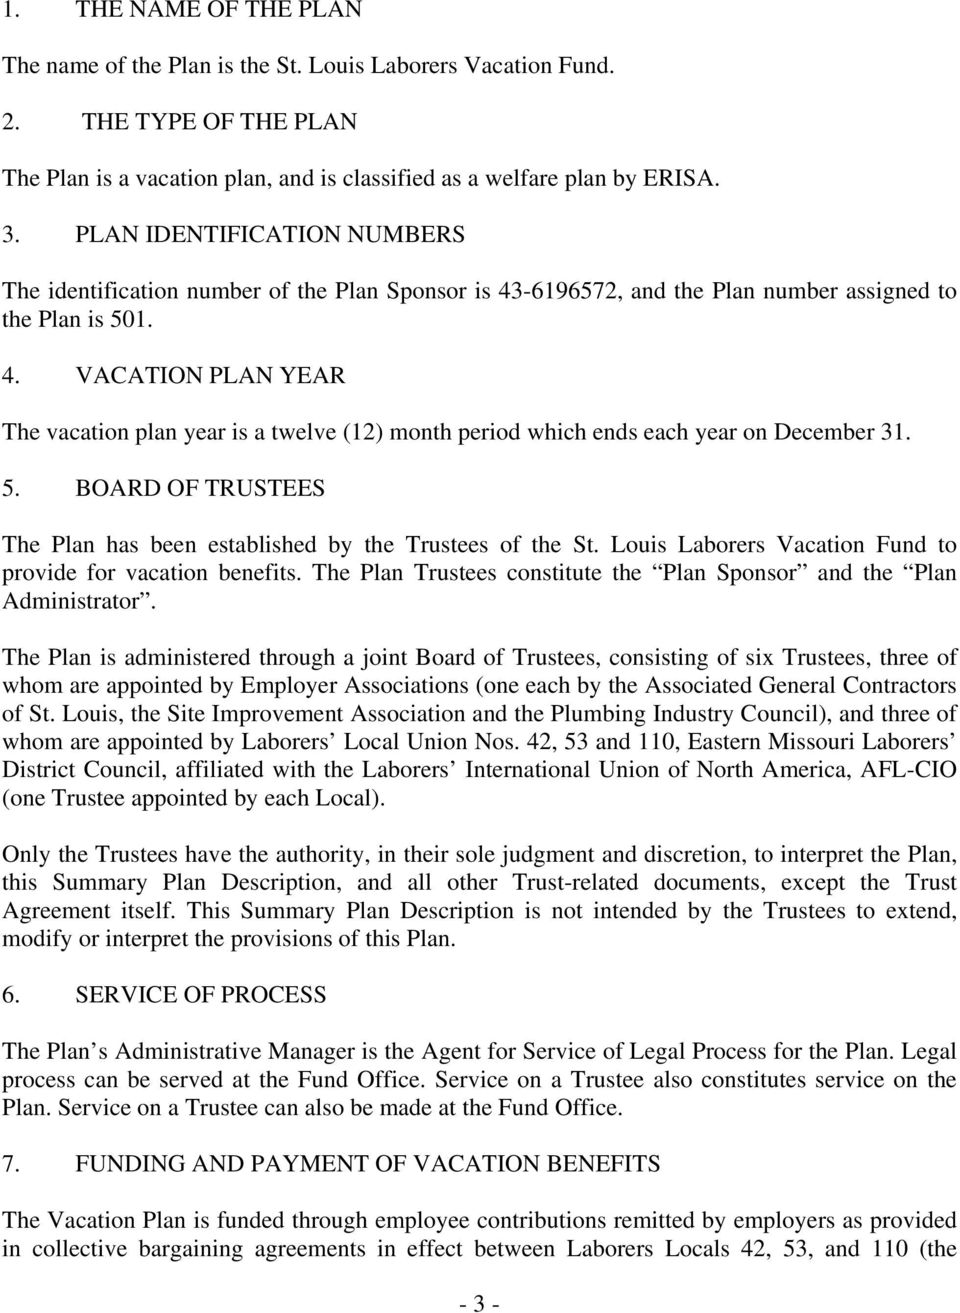 5. BOARD OF TRUSTEES The Plan has been established by the Trustees of the St. Louis Laborers Vacation Fund to provide for vacation benefits.